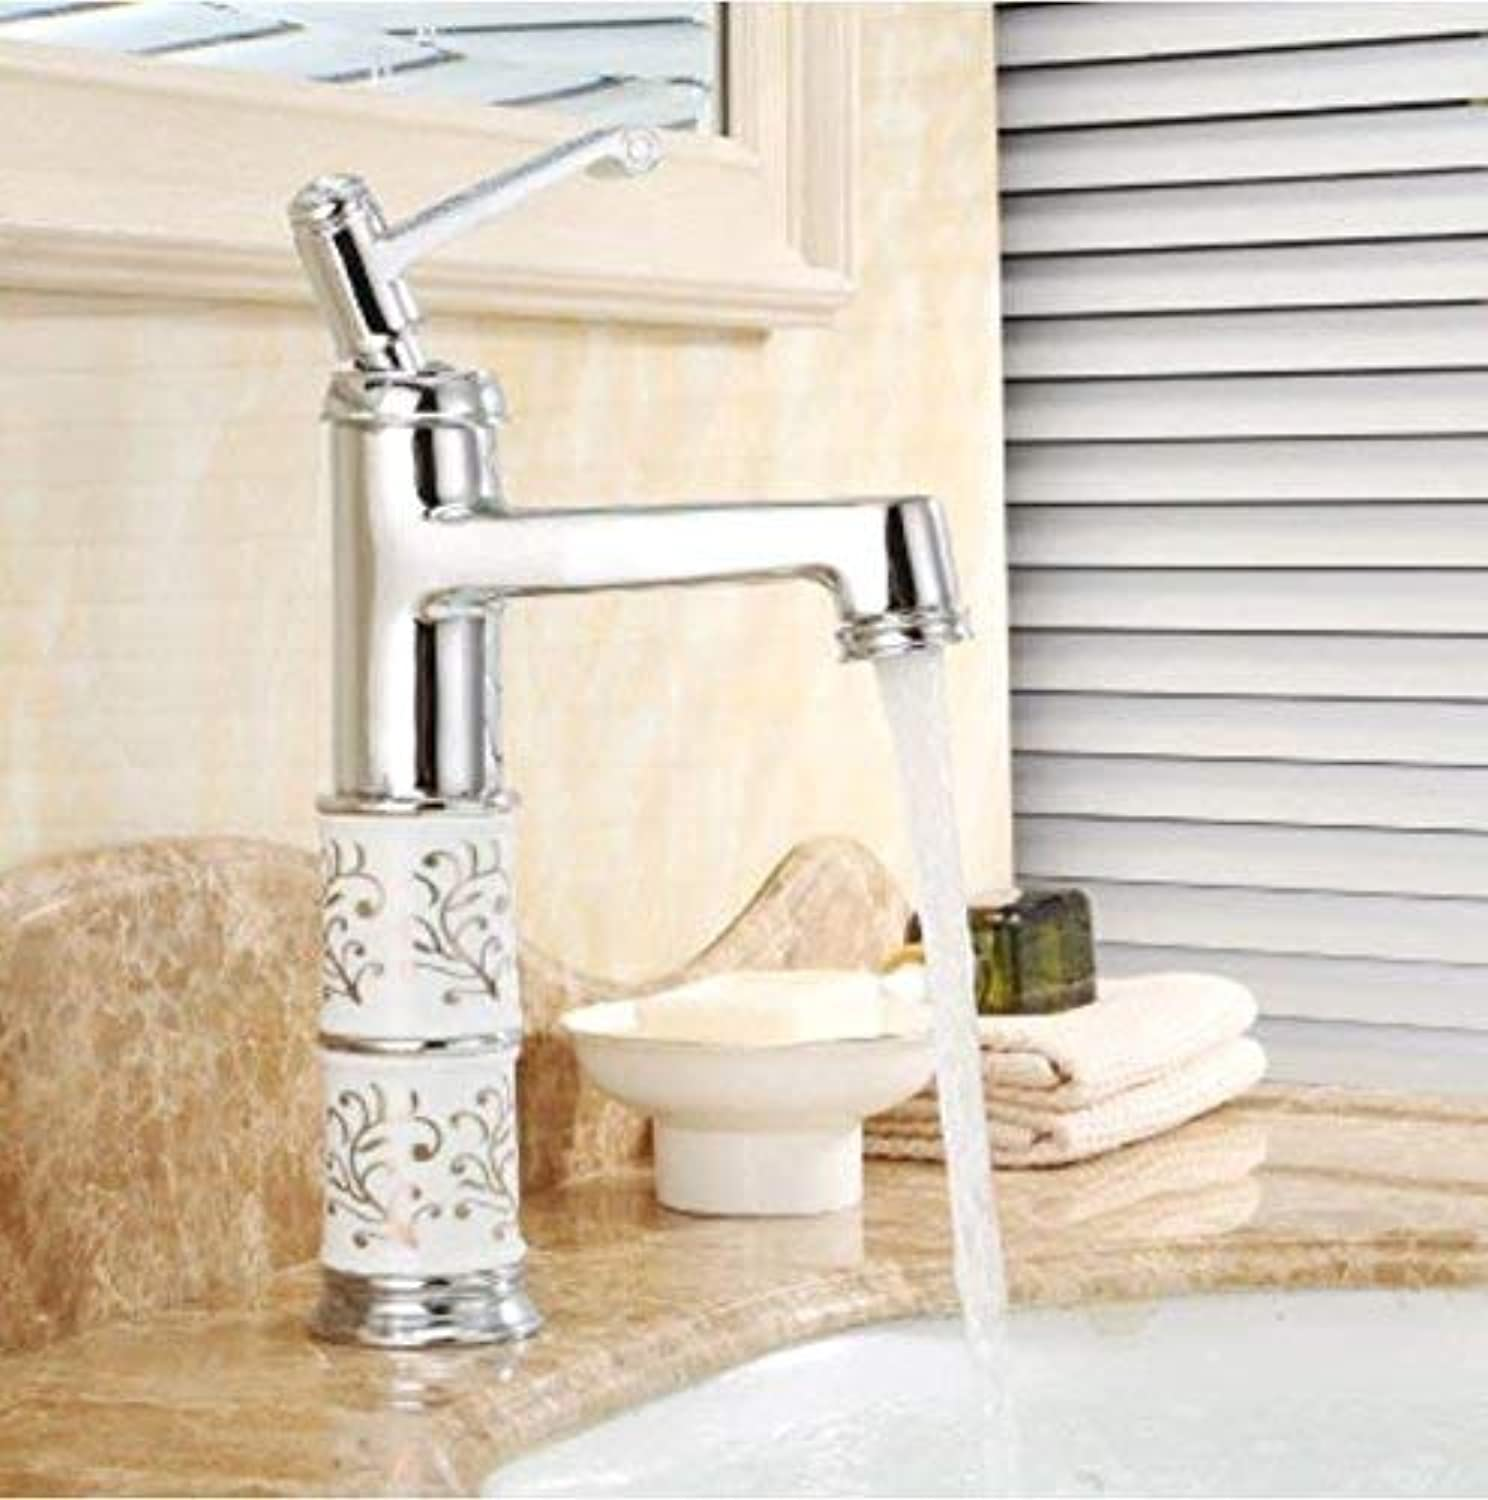 Oudan Cold and Hot Copper Bath Basin Faucet Antique Wash Basin Faucet European Basin Basin Washbasin Faucet Ceramic Valve Core with Hose (color   -, Size   -)